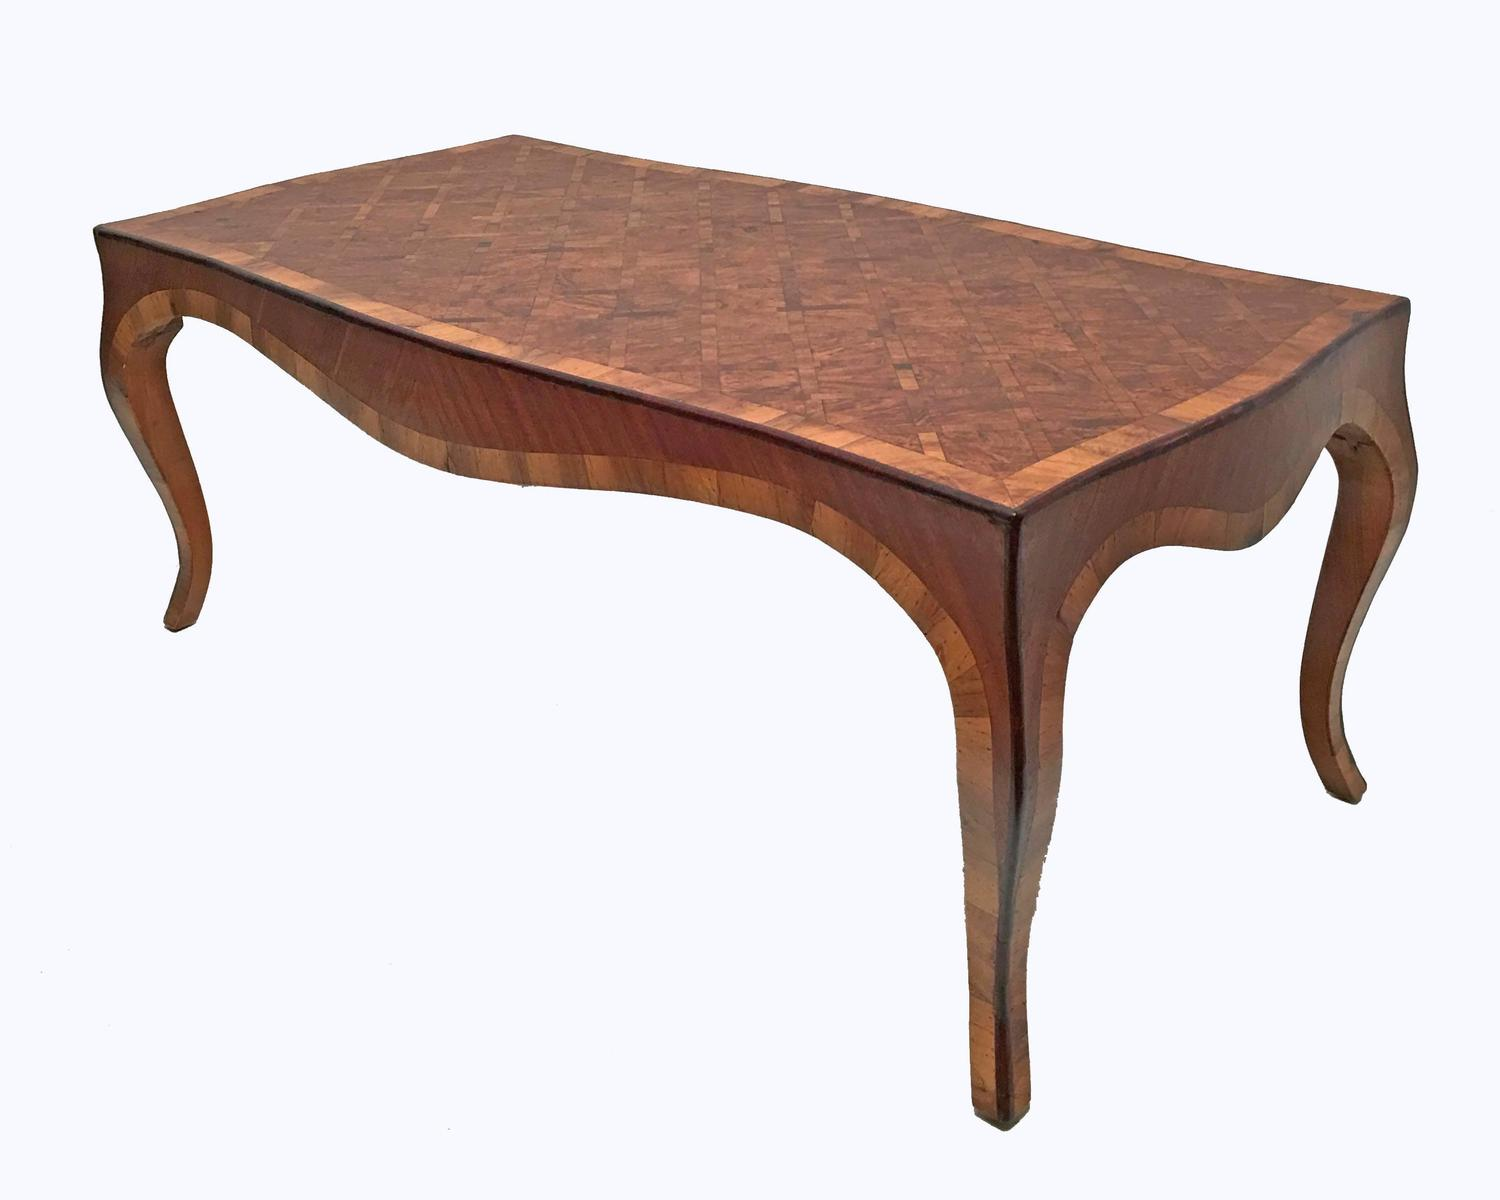 Inlaid Burl Wood Parquetry Cocktail Coffee Table Italian At 1stdibs